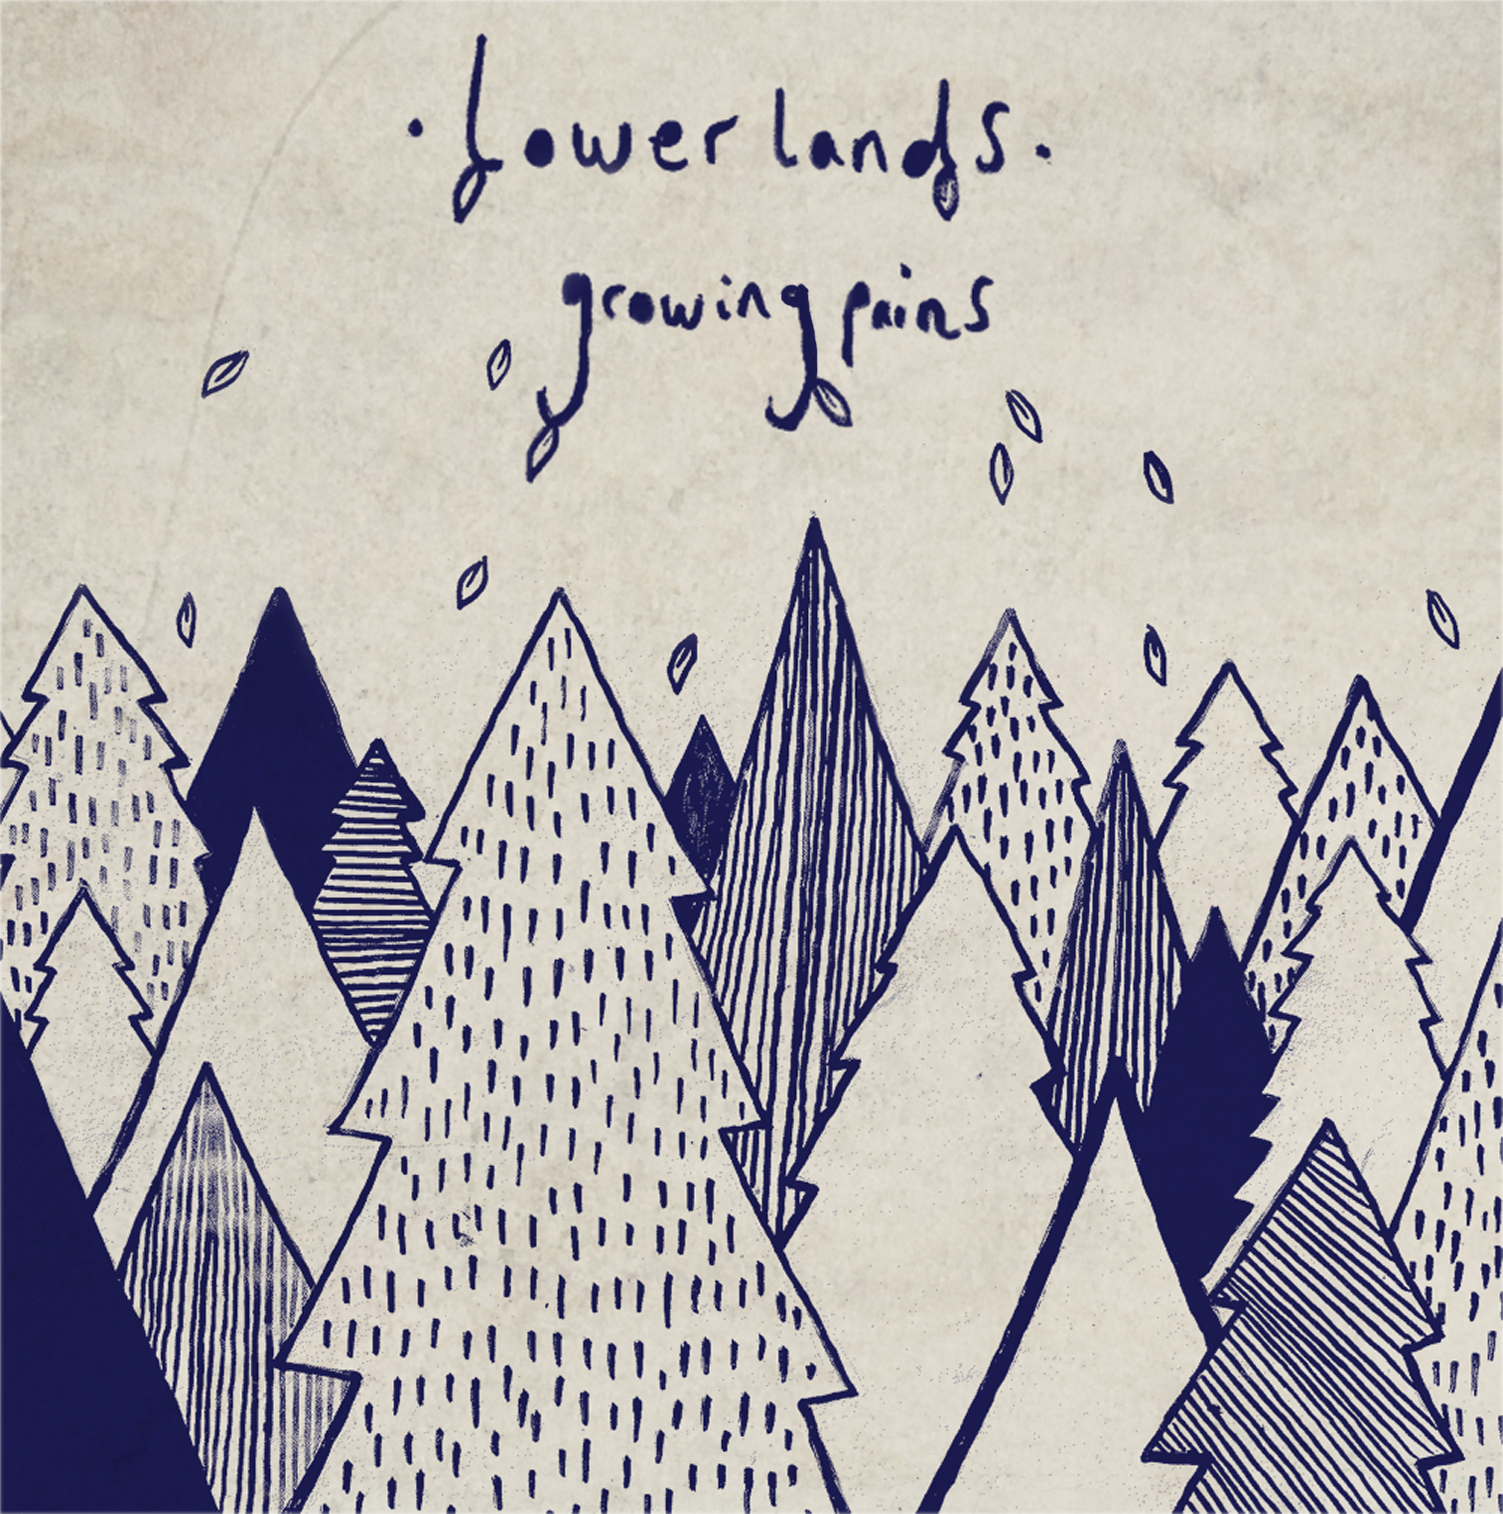 Lower Lands Growing Pains Artwork